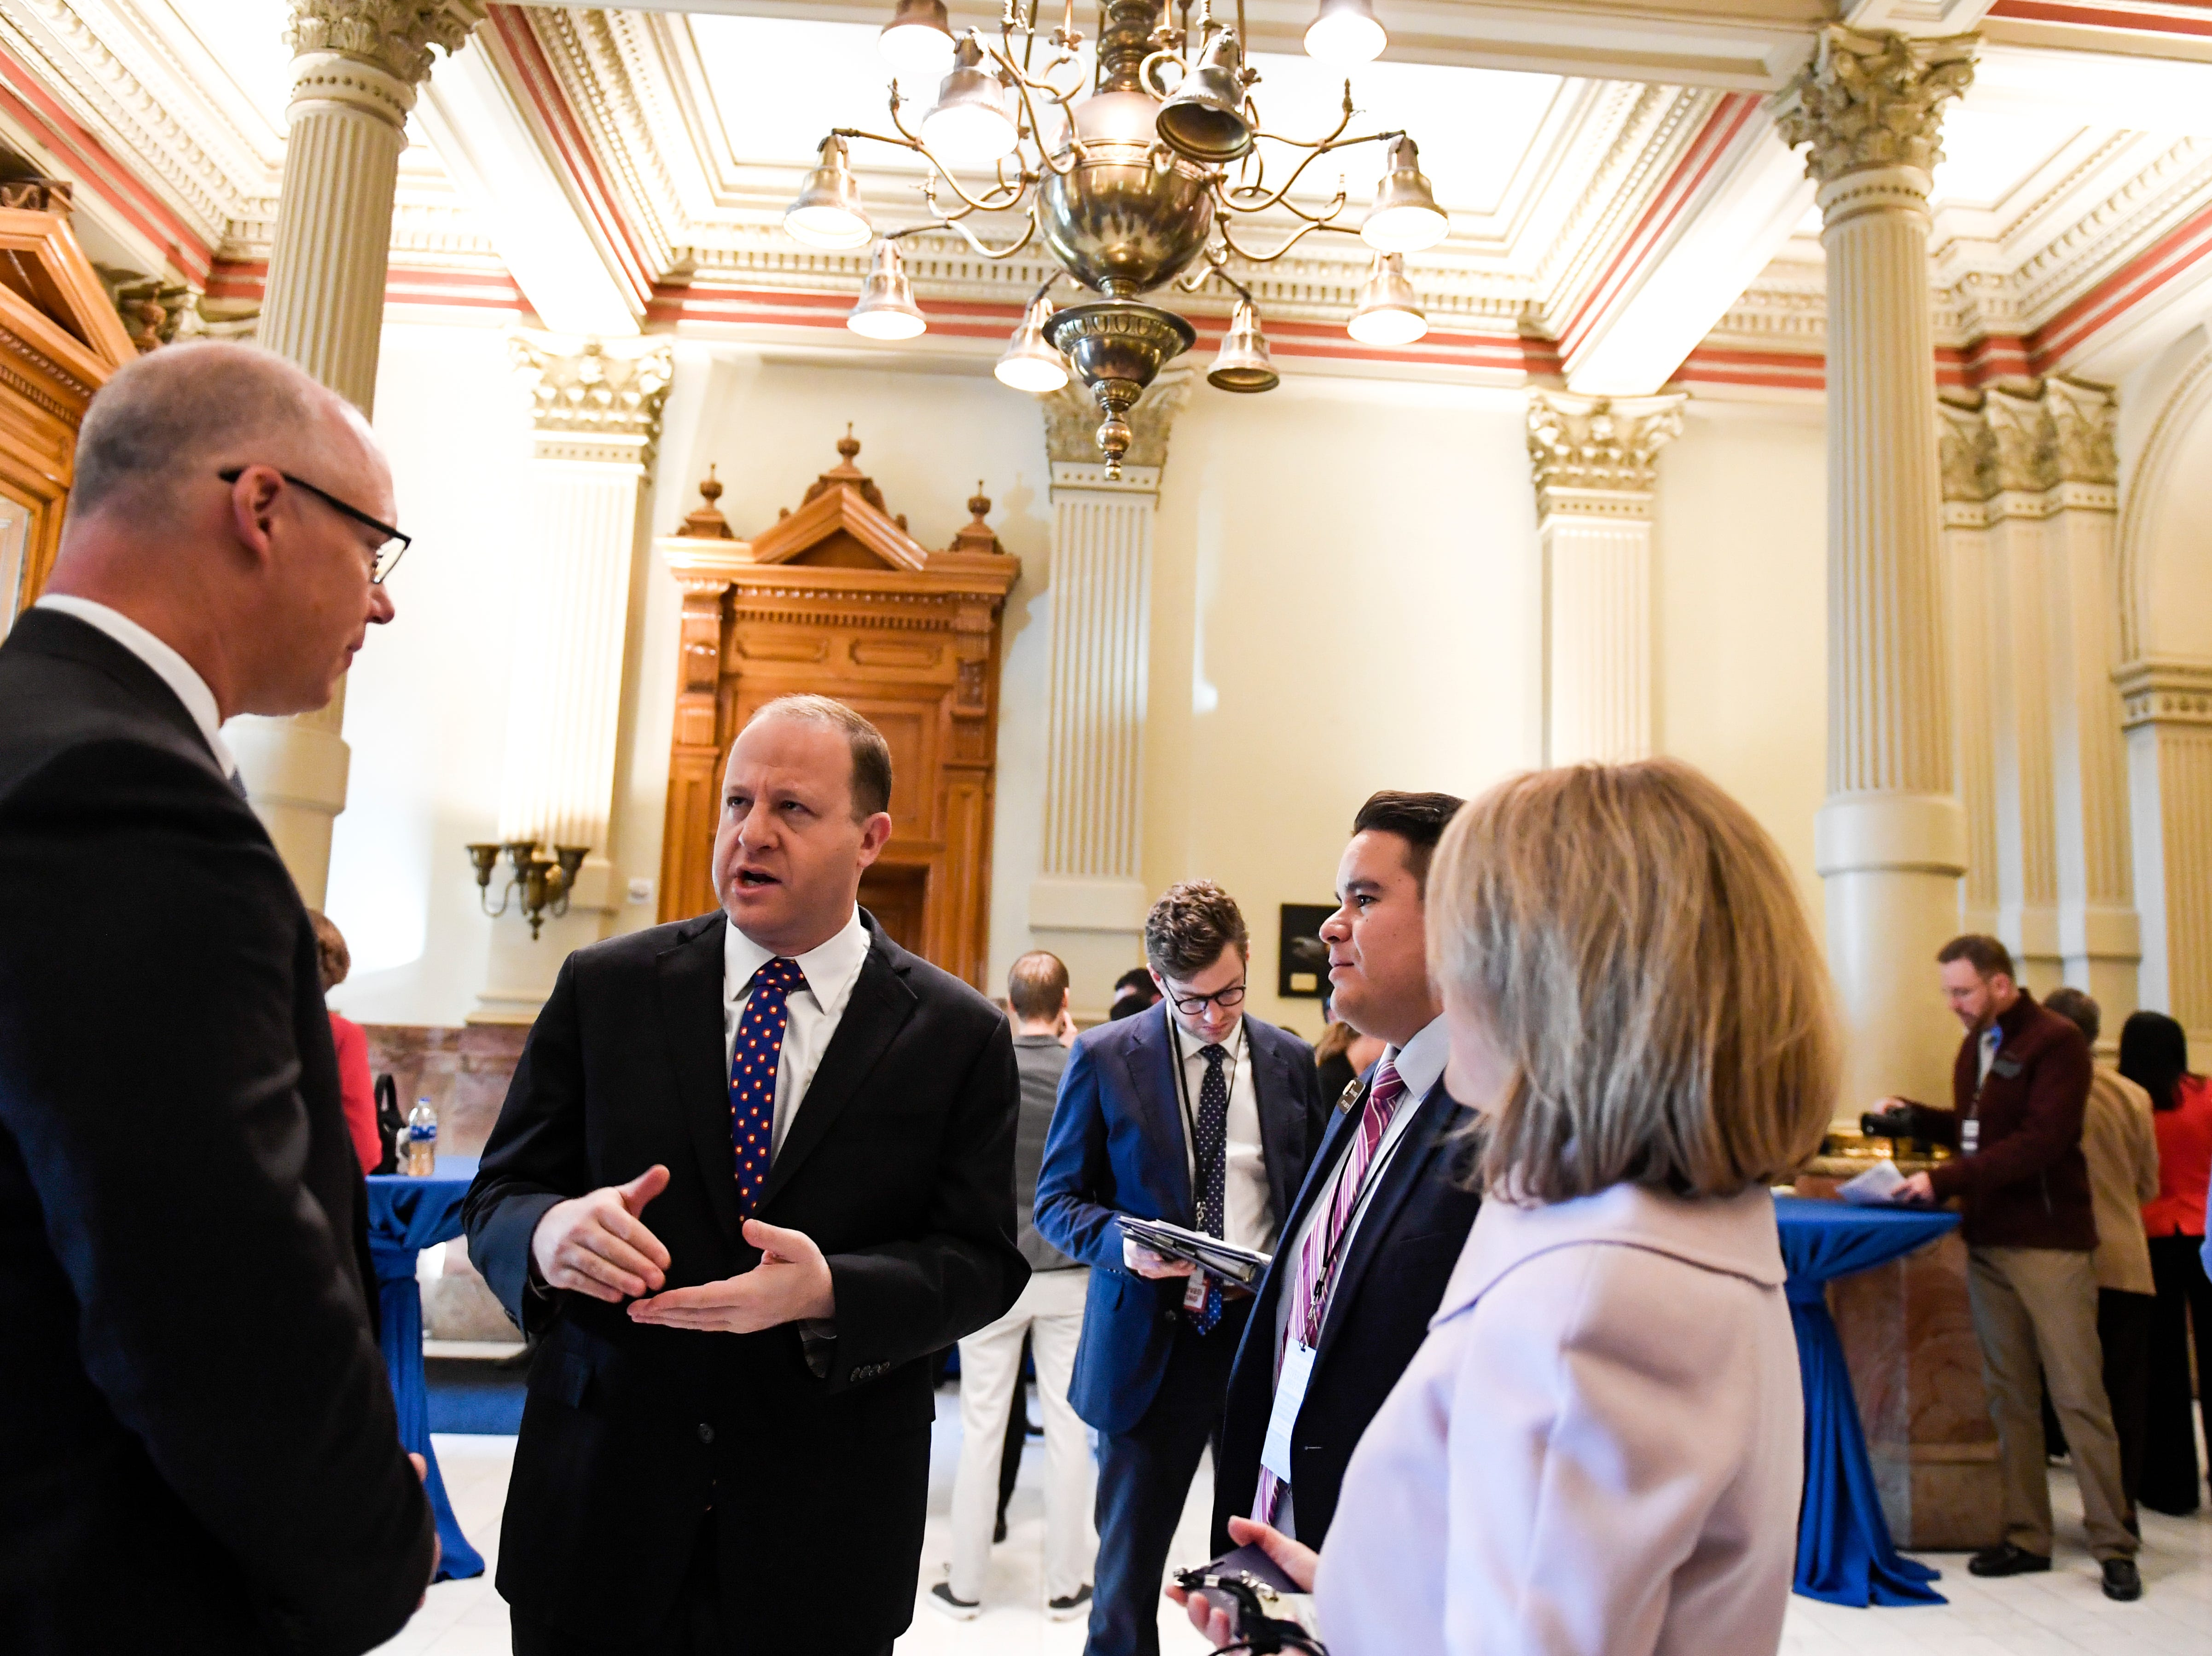 DENVER, CO - JANUARY 8: Colorado Governor elect Jared Polis speaks to (from left to right) state Senators Kevin Priola and Dominick Moreno and Rep. Shannon Bird before his inauguration at the Colorado State Capitol on Tuesday, January 8, 2019. (Photo by AAron Ontiveroz/The Denver Post/Pool)